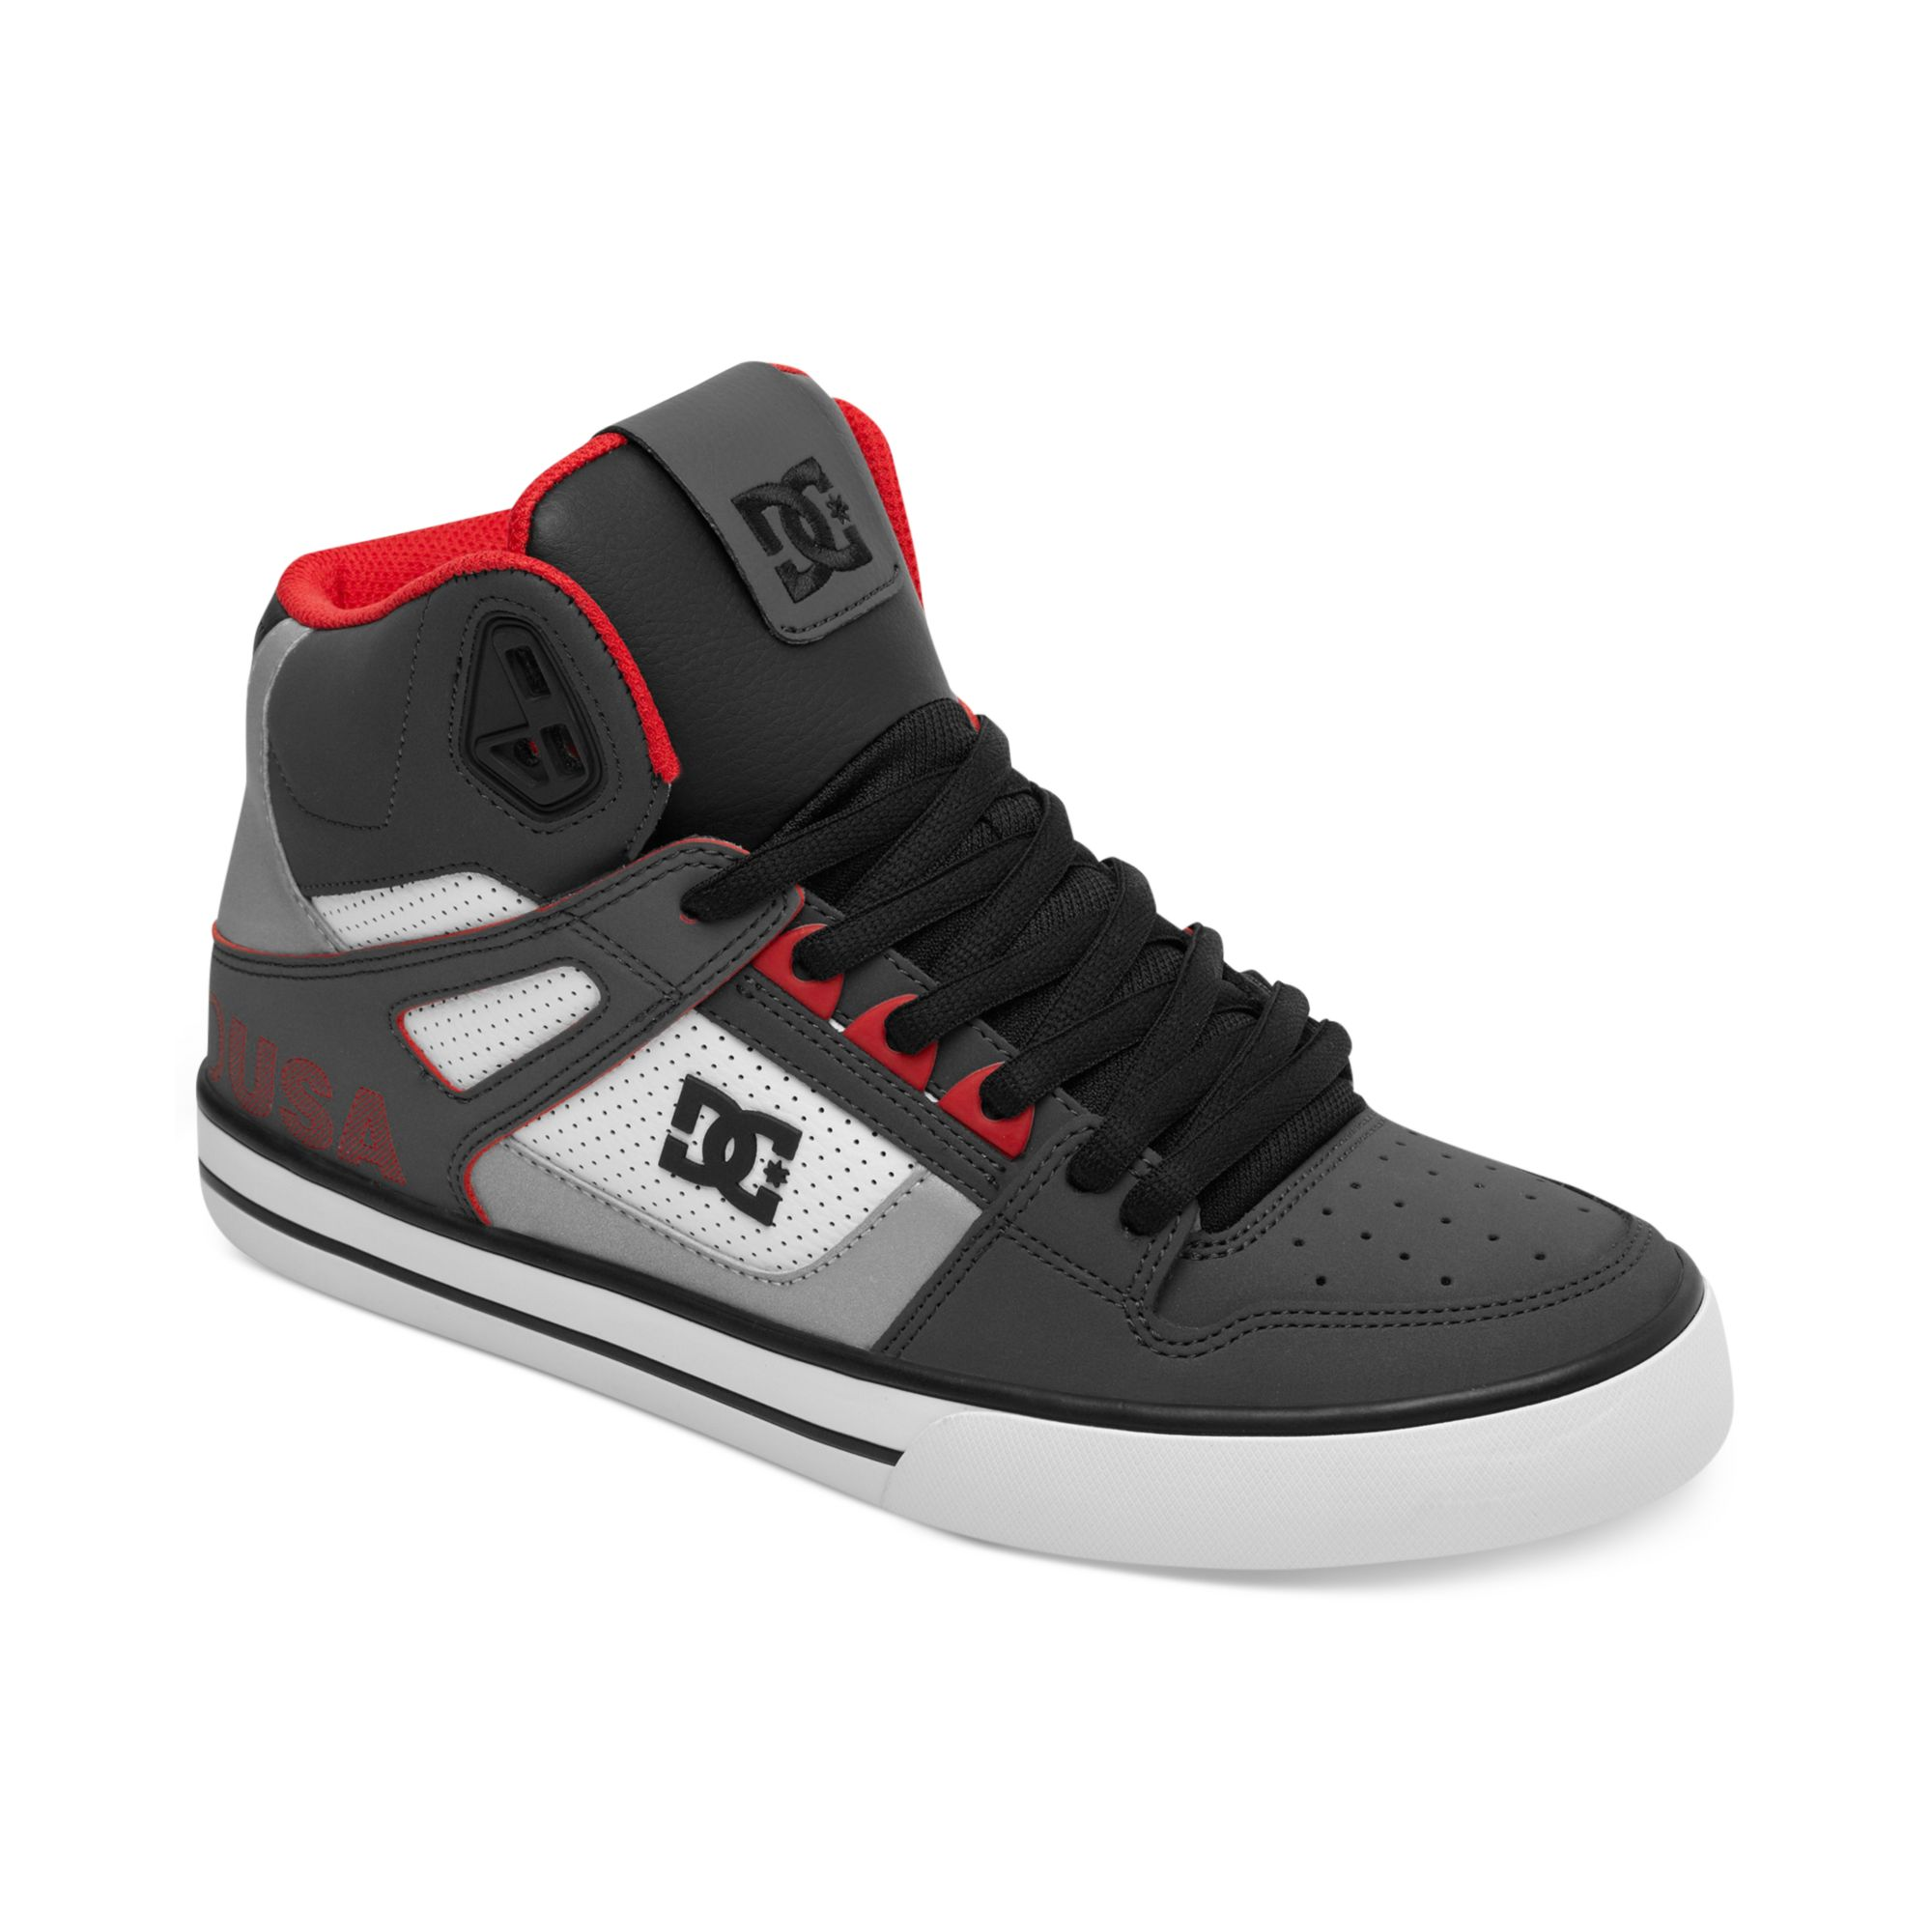 031f263928ab DC Shoes Spartan Hi Wc Se Sneakers in Gray for Men - Lyst